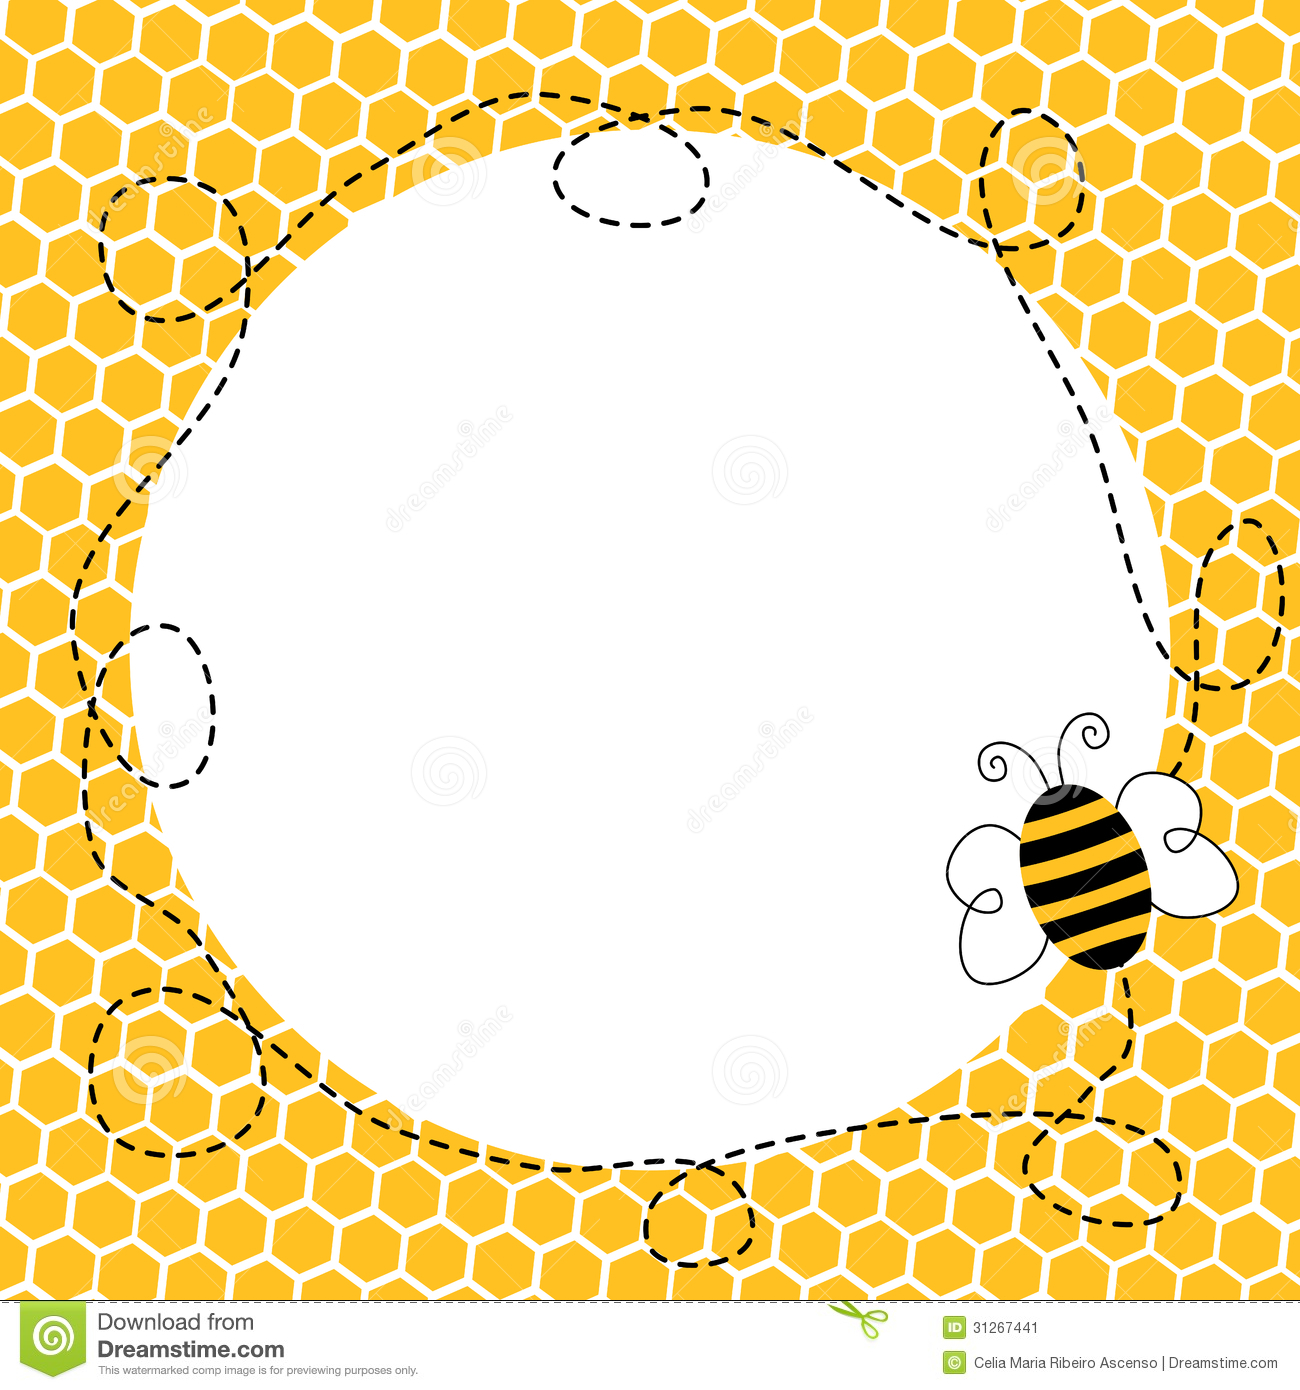 Flying Bee In A Honeycomb Frame Stock Image - Image: 31267441